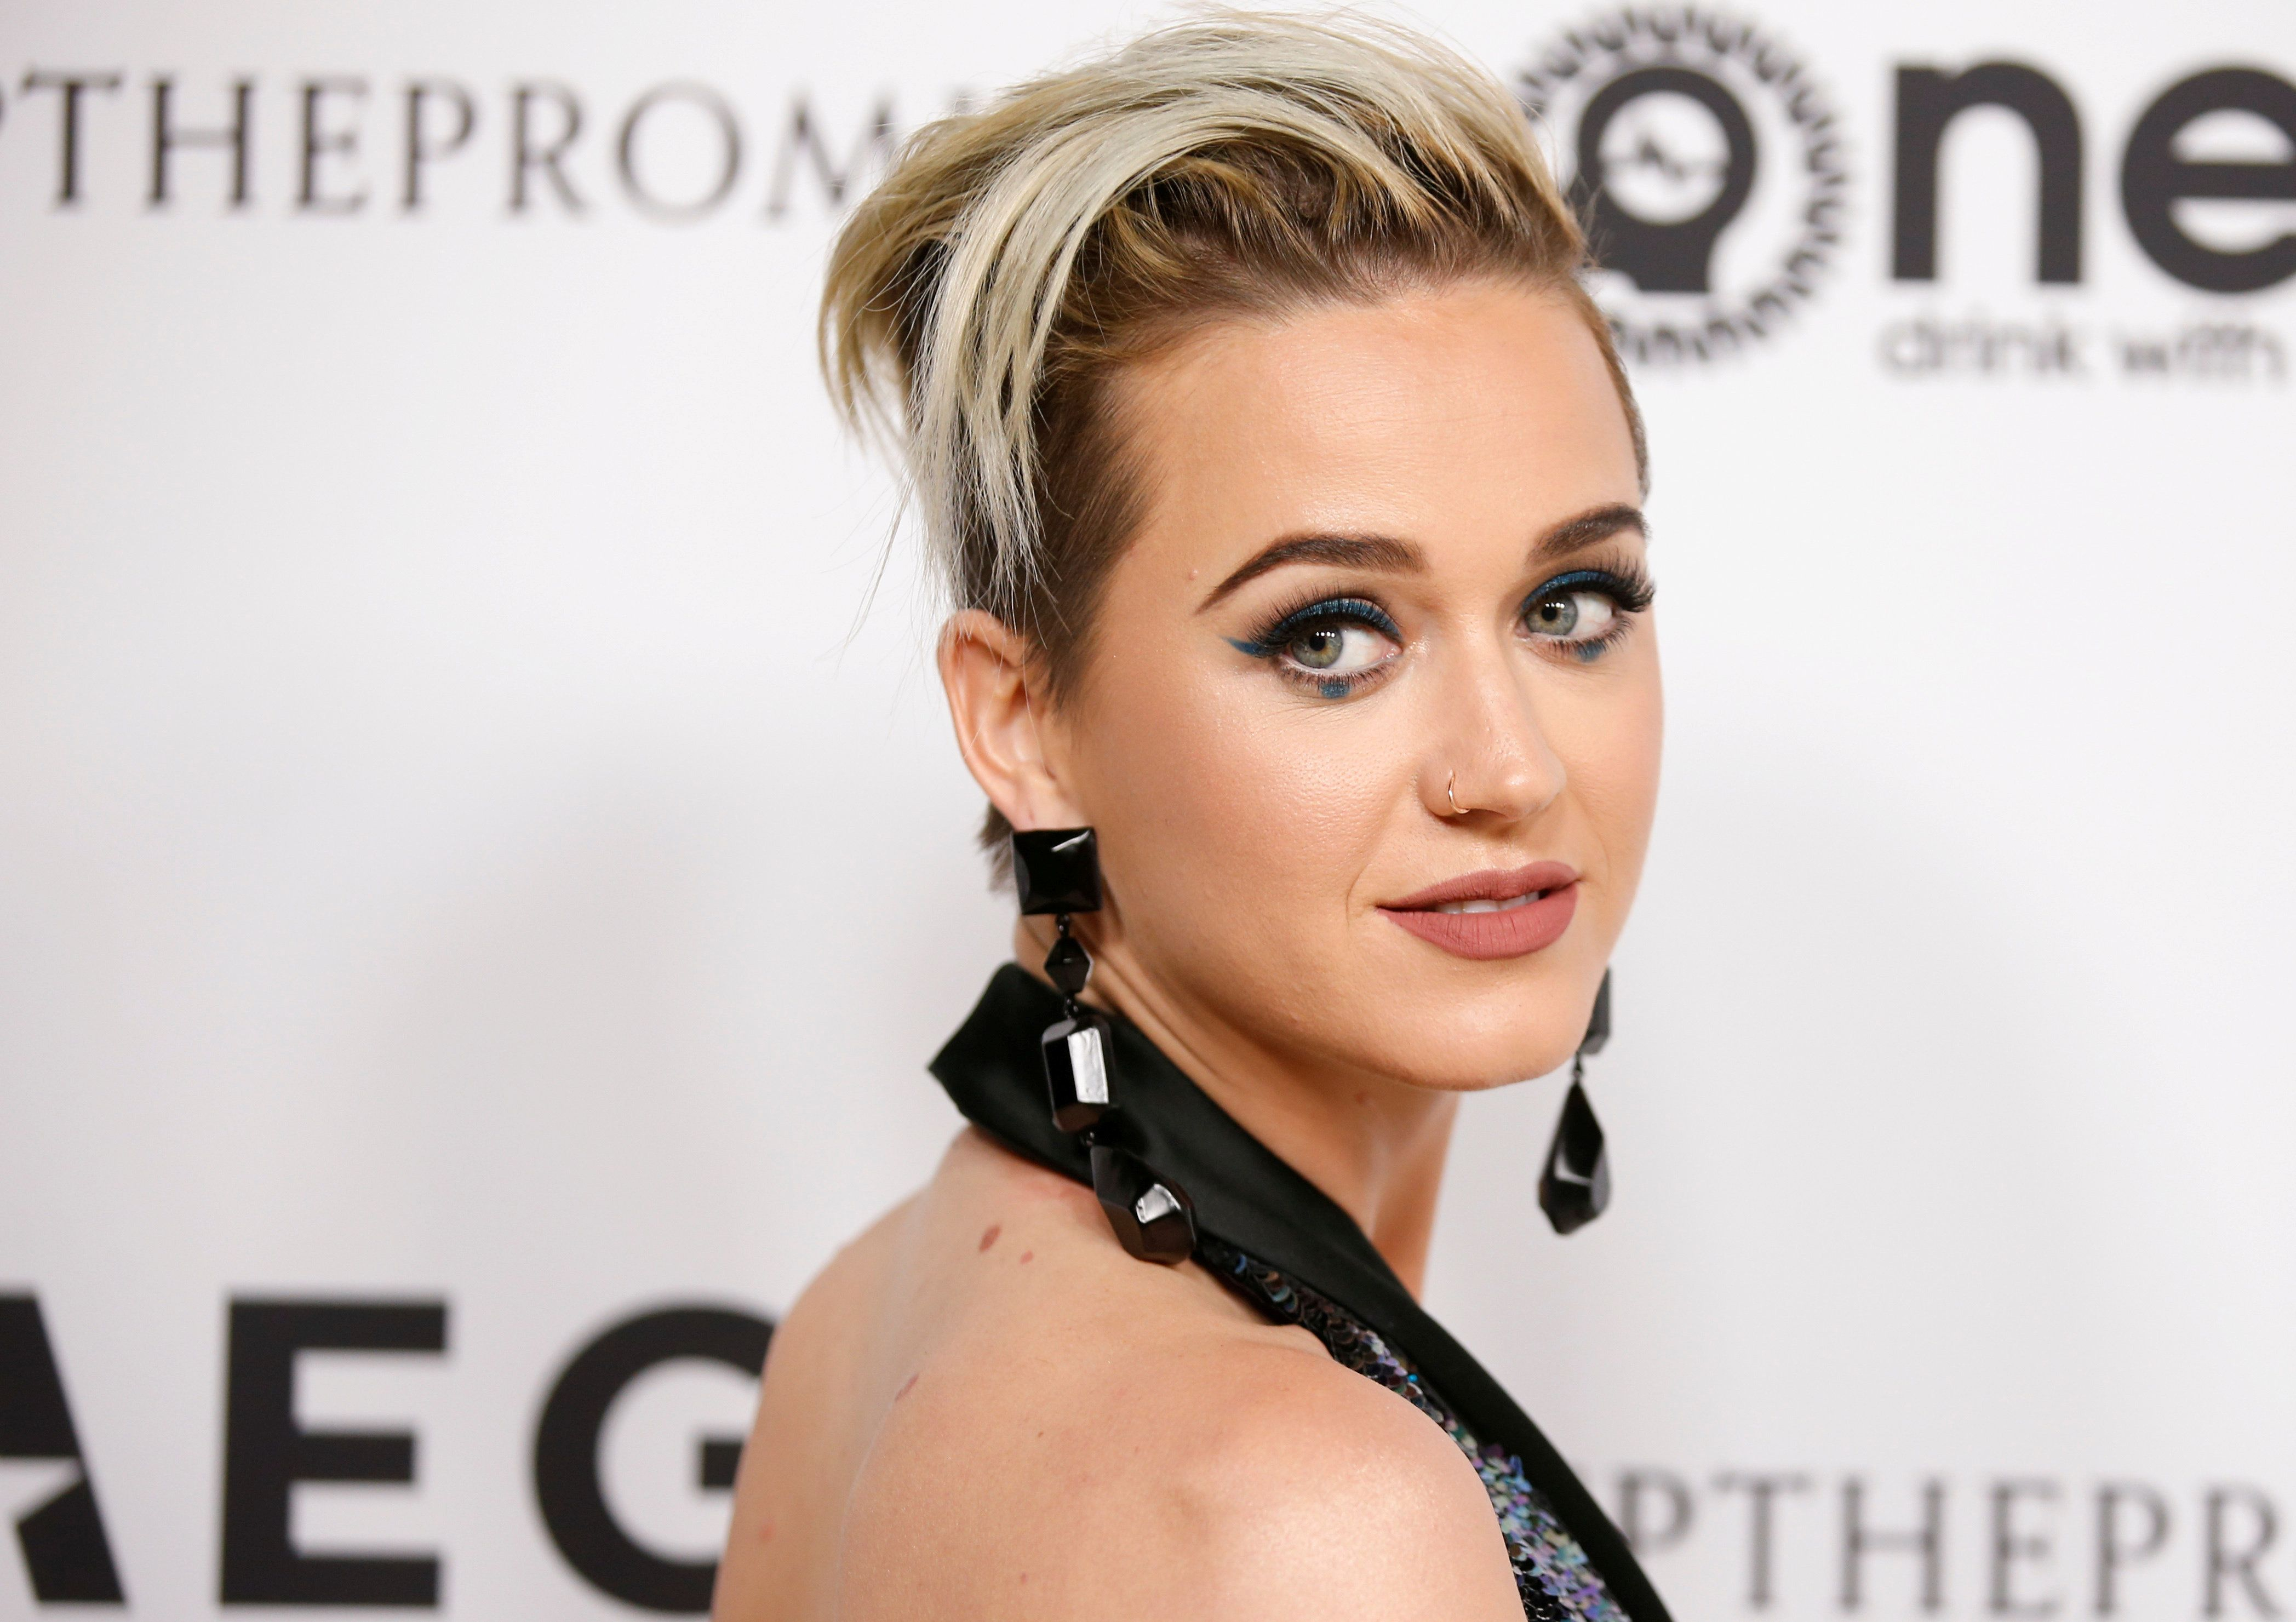 FILE PHOTO: Singer Katy Perry poses at Elton John's 70th Birthday and 50-Year Songwriting Partnership with Bernie Taupin benefiting the Elton John AIDS Foundation and the UCLA Hammer Museum at RED Studios Hollywood in Los Angeles, California, U.S. on March 25, 2017. REUTERS/Danny Moloshok/File Photo